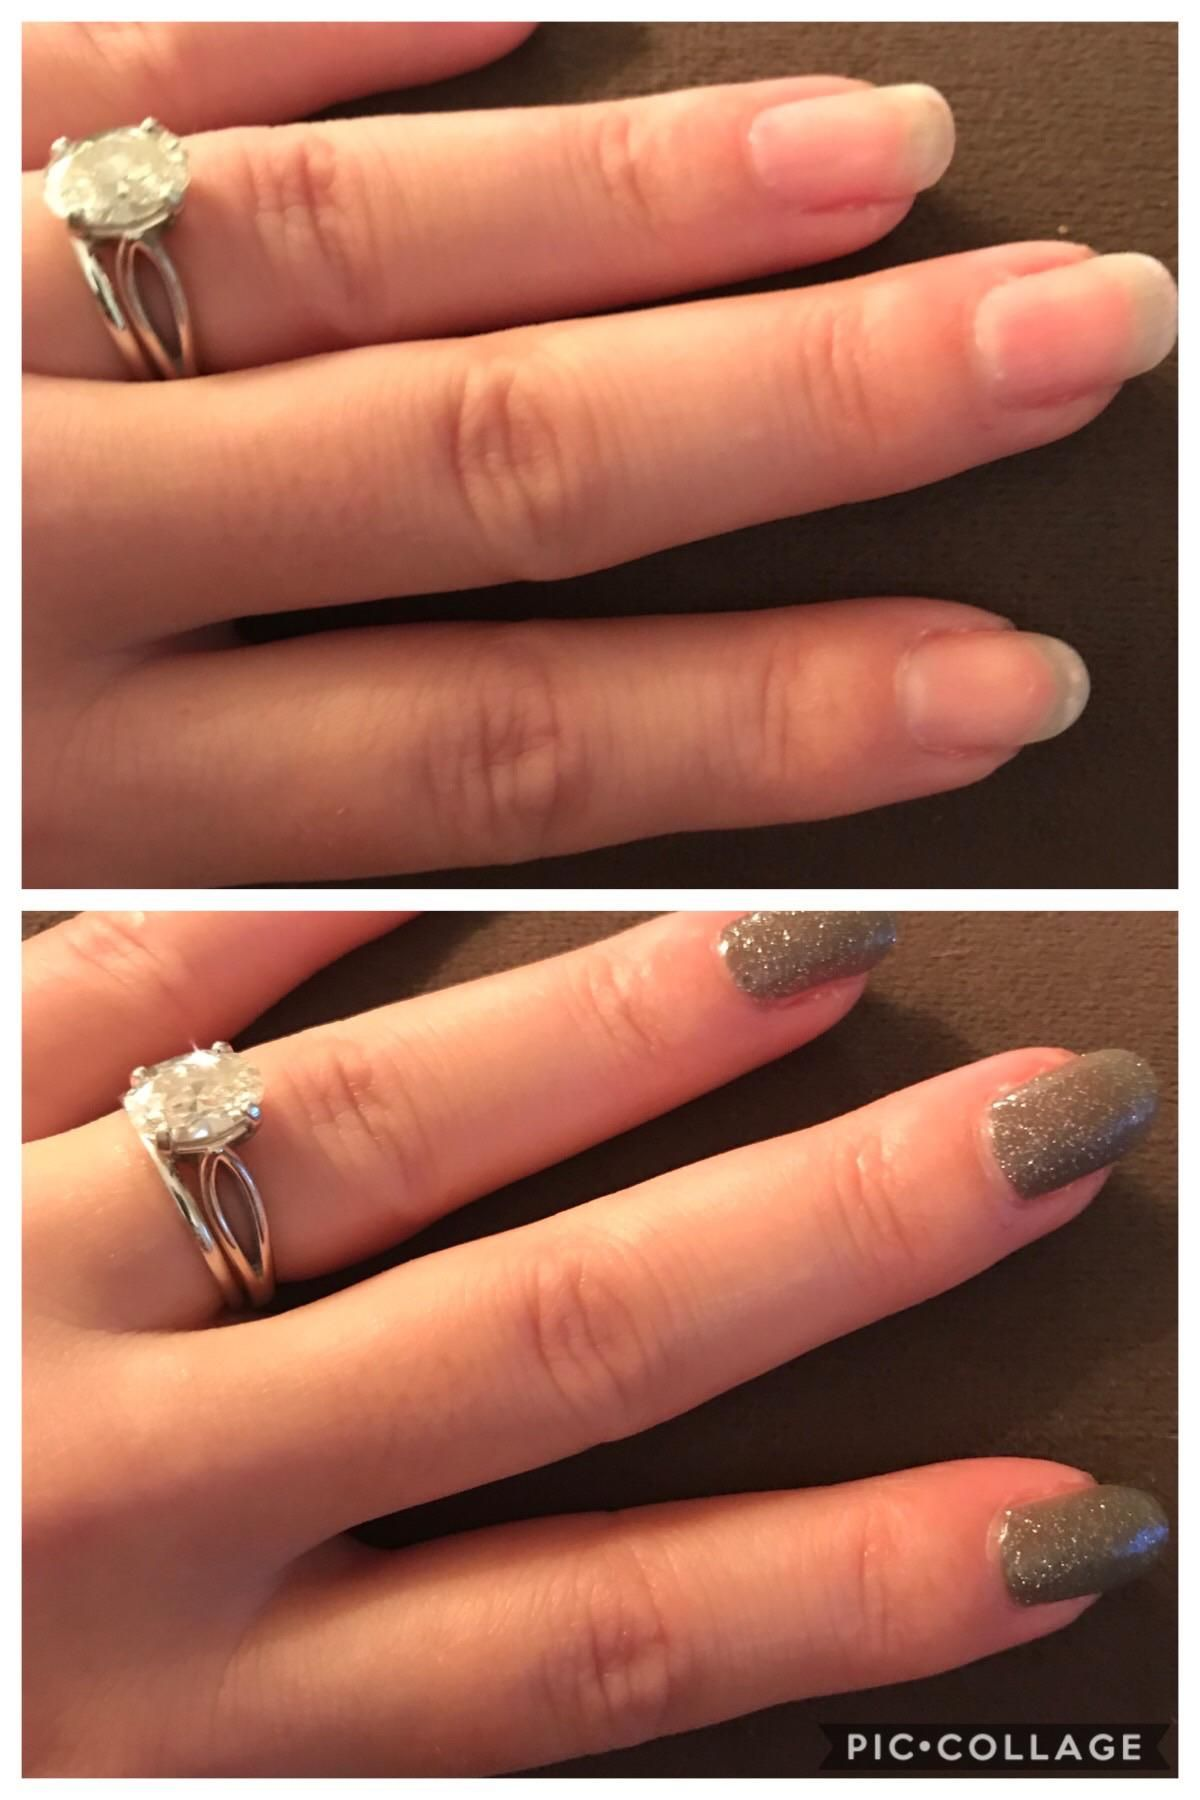 The Longest My Natural Nails Have Ever Been Evmore Electric Vehichle Natural Nails Creative Nail Designs Short Nail Designs